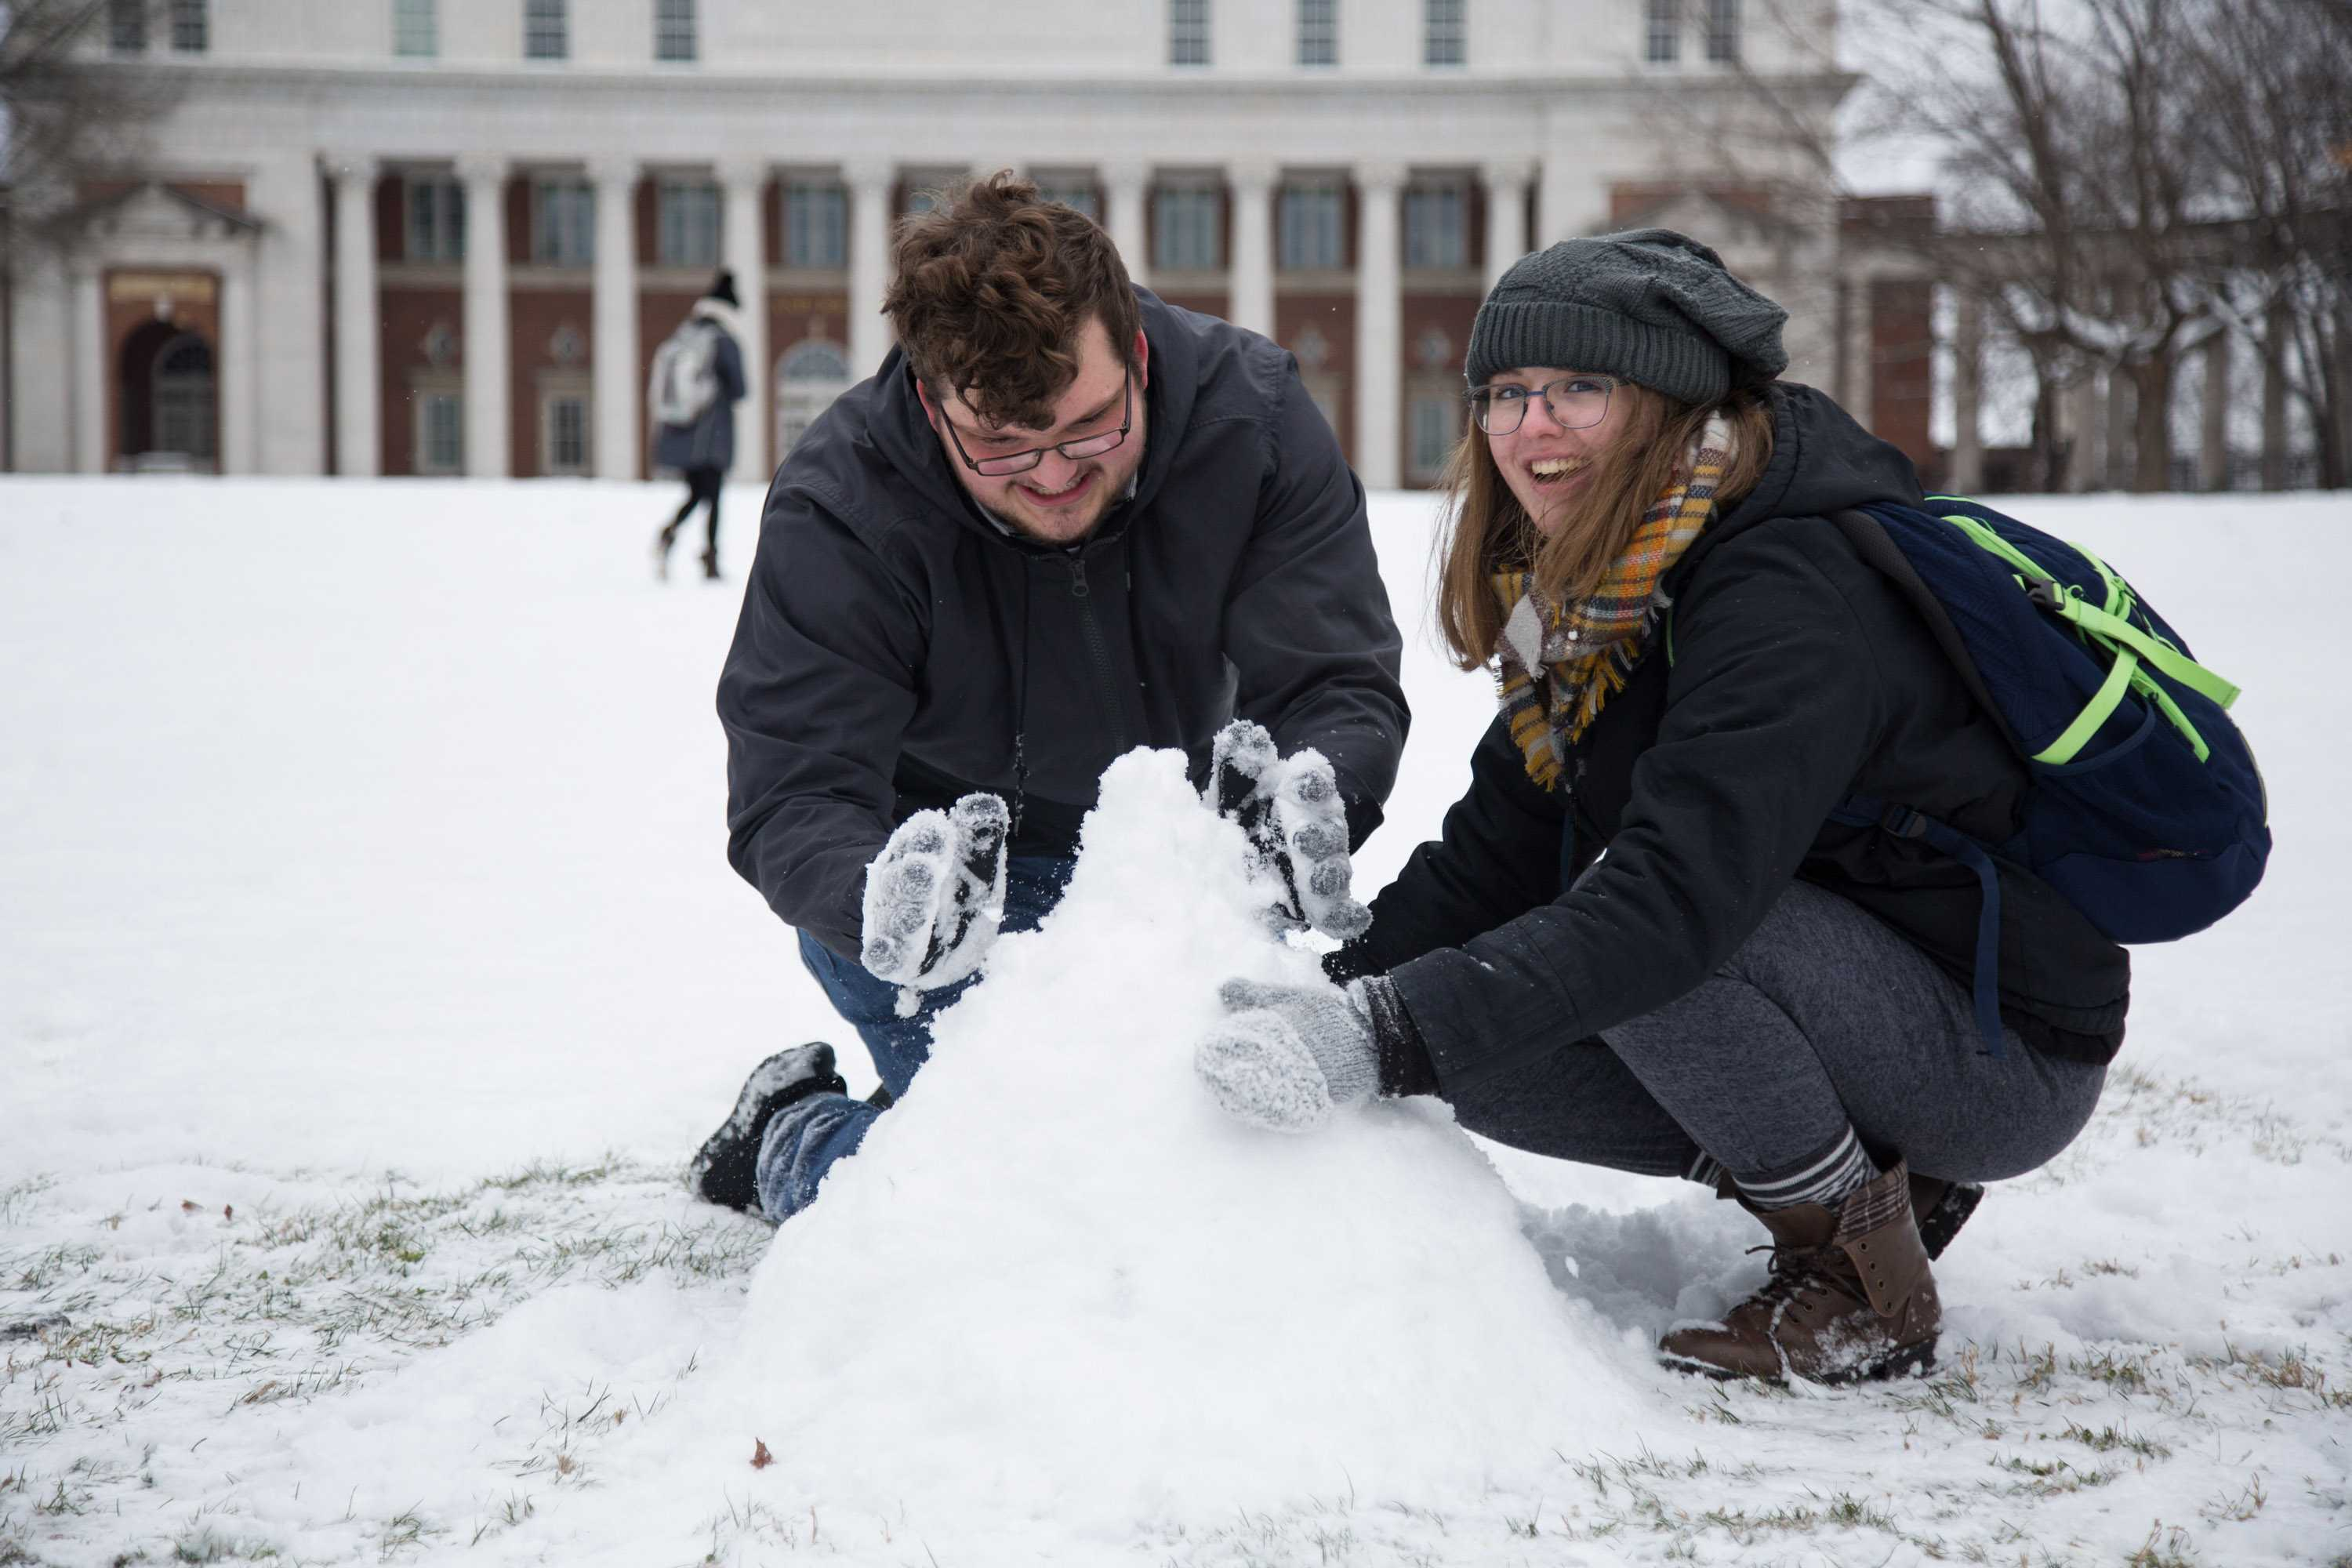 Snowy weather visits Vanderbilt on Tuesday, January 16, 2018. Two students took advantage of the precipitation to build a snowman on Wyatt Lawn. (Photo by Claire Barnett)